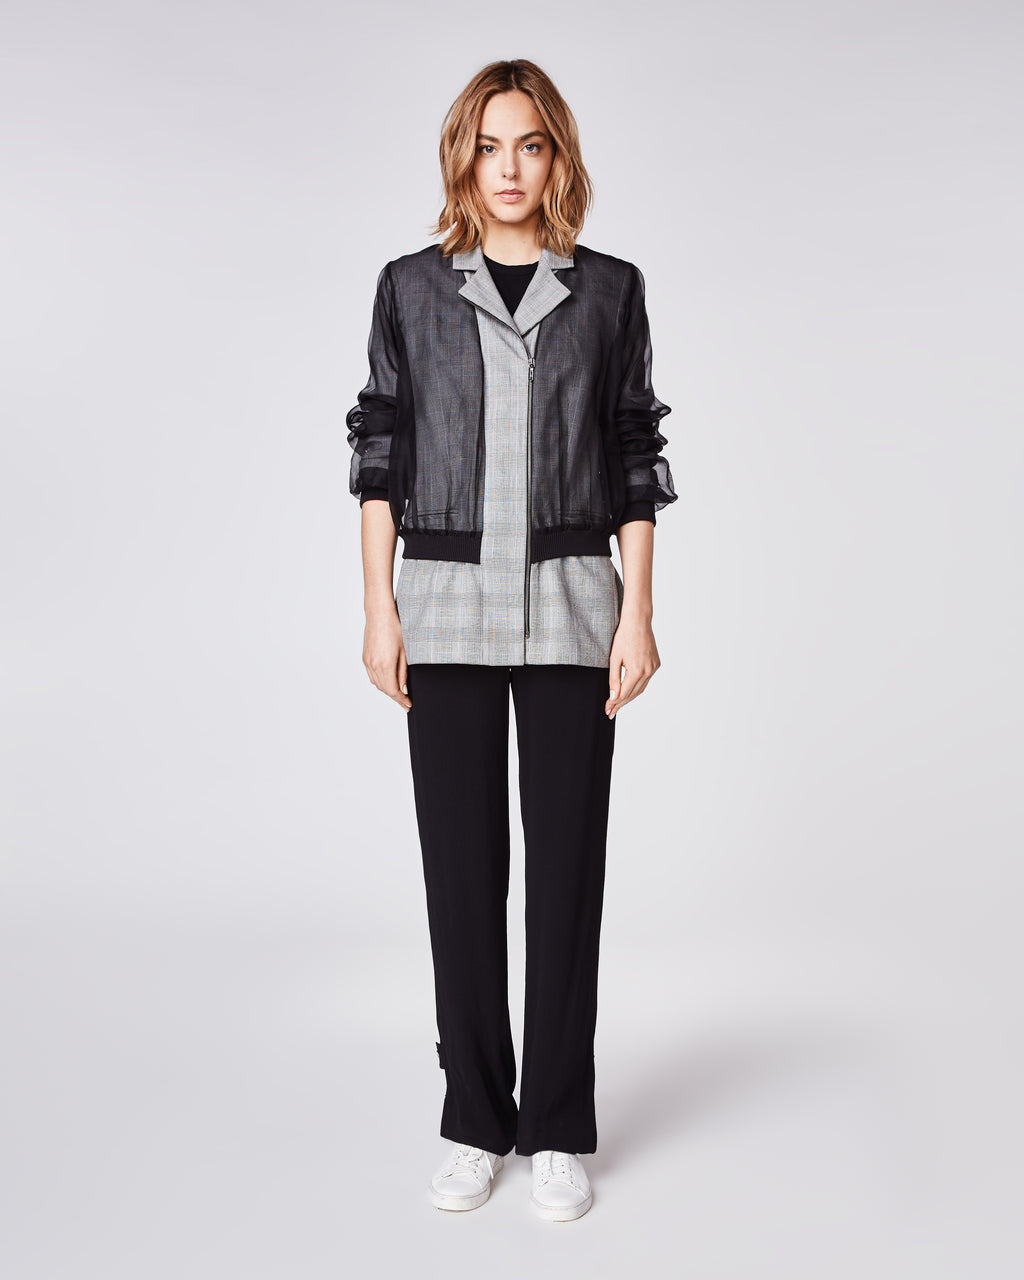 CO10117 - GLEN PLAID COMBO ZIP FRONT JACKET - outerwear - jackets - With a layered organza bomber, this unique plaid jacket features ribbed cuffs and subtle shoulder pad. Finished with an asymmetrical zipper and fully lined